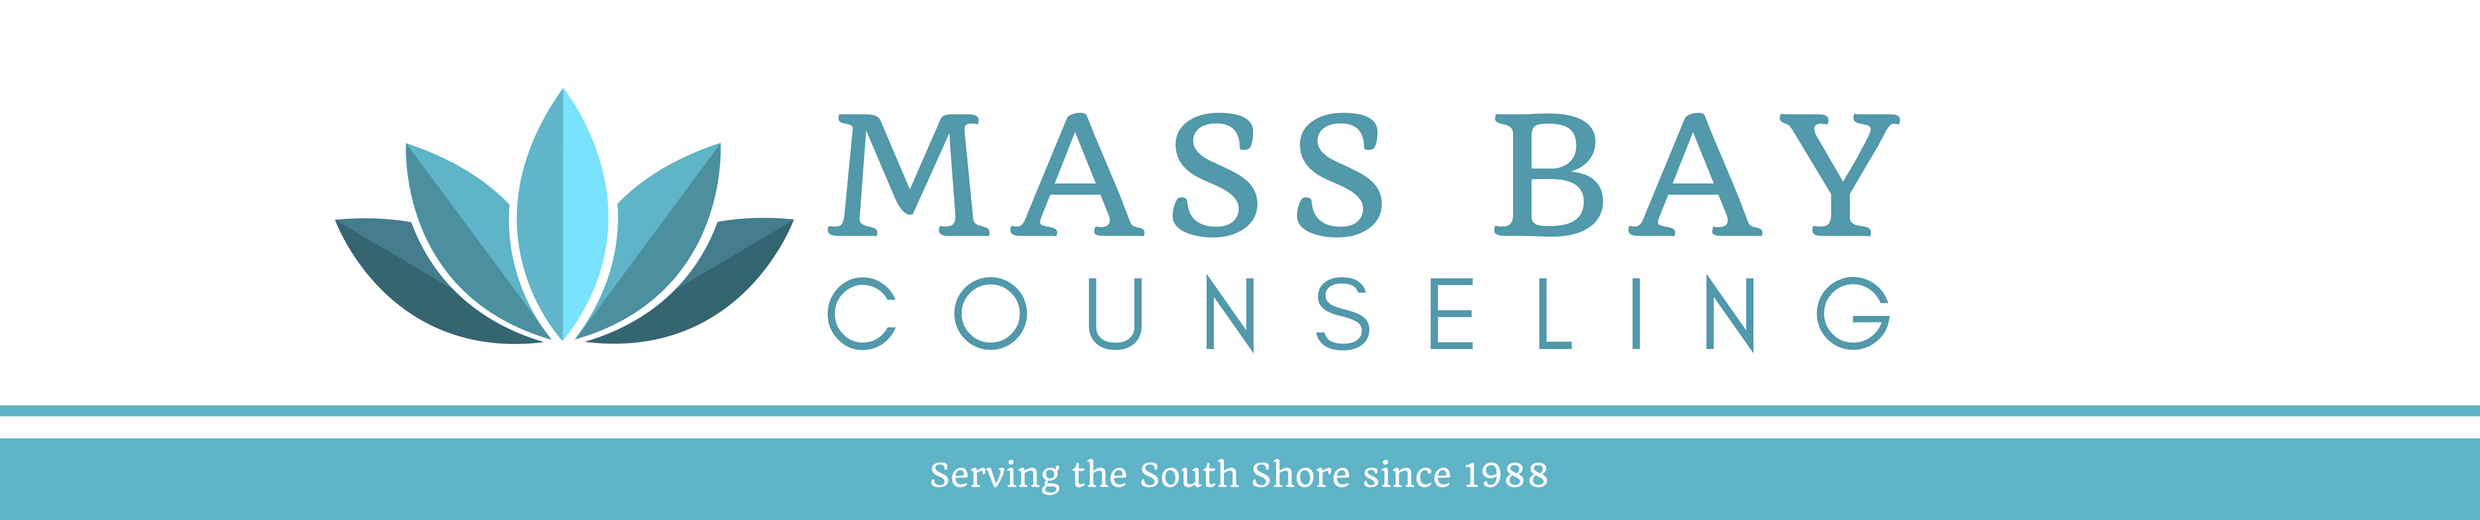 Mass Bay Counseling Marshfield